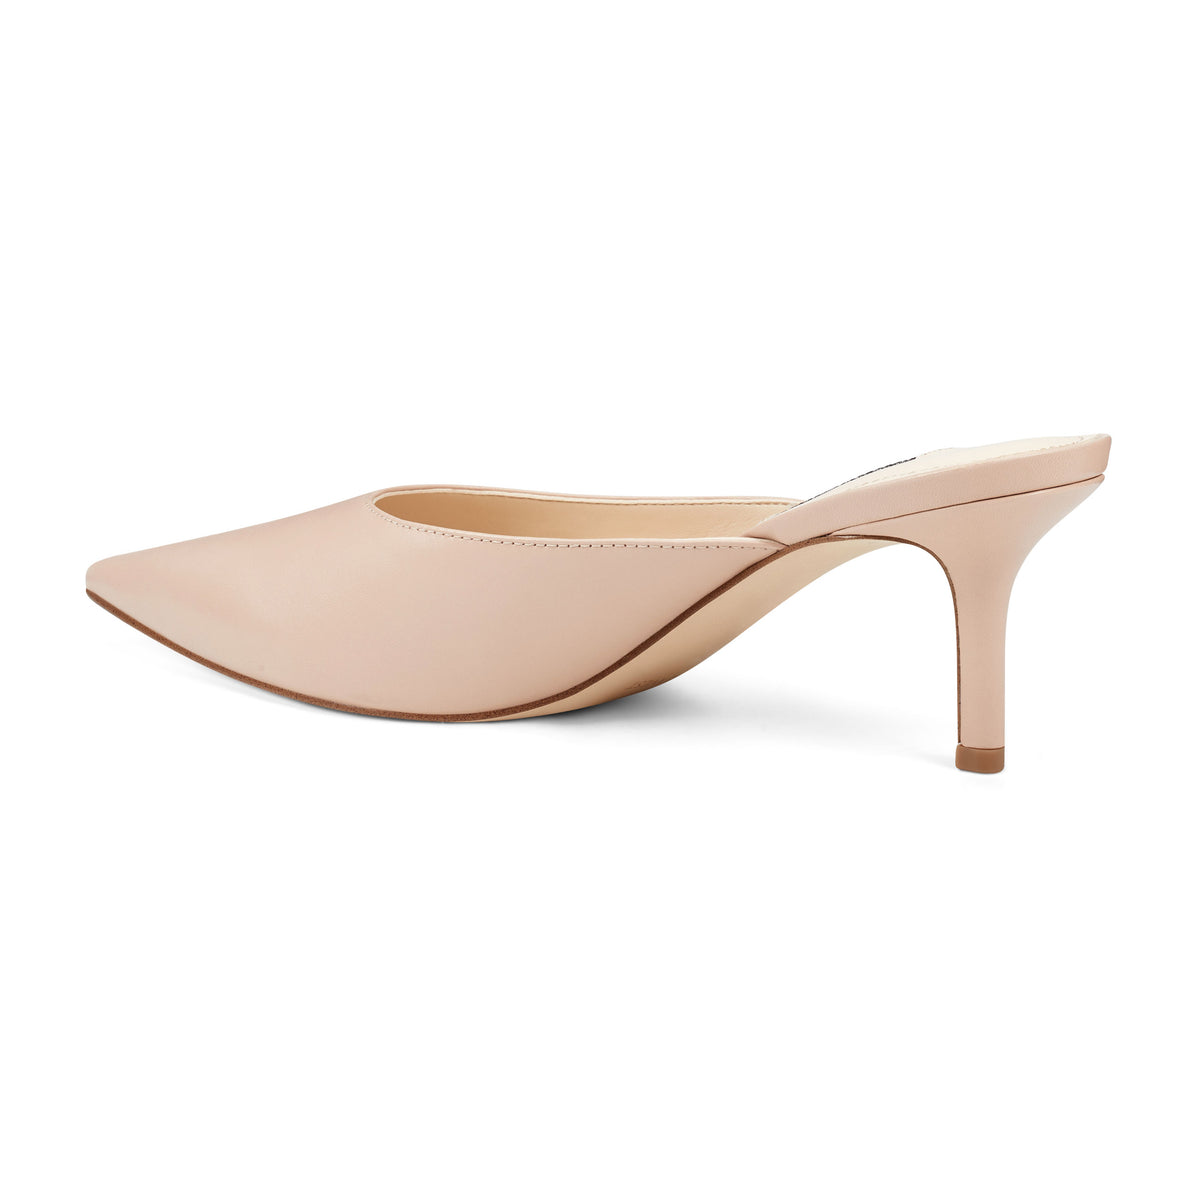 ali-pointy-toe-mules-in-light-natural-leather